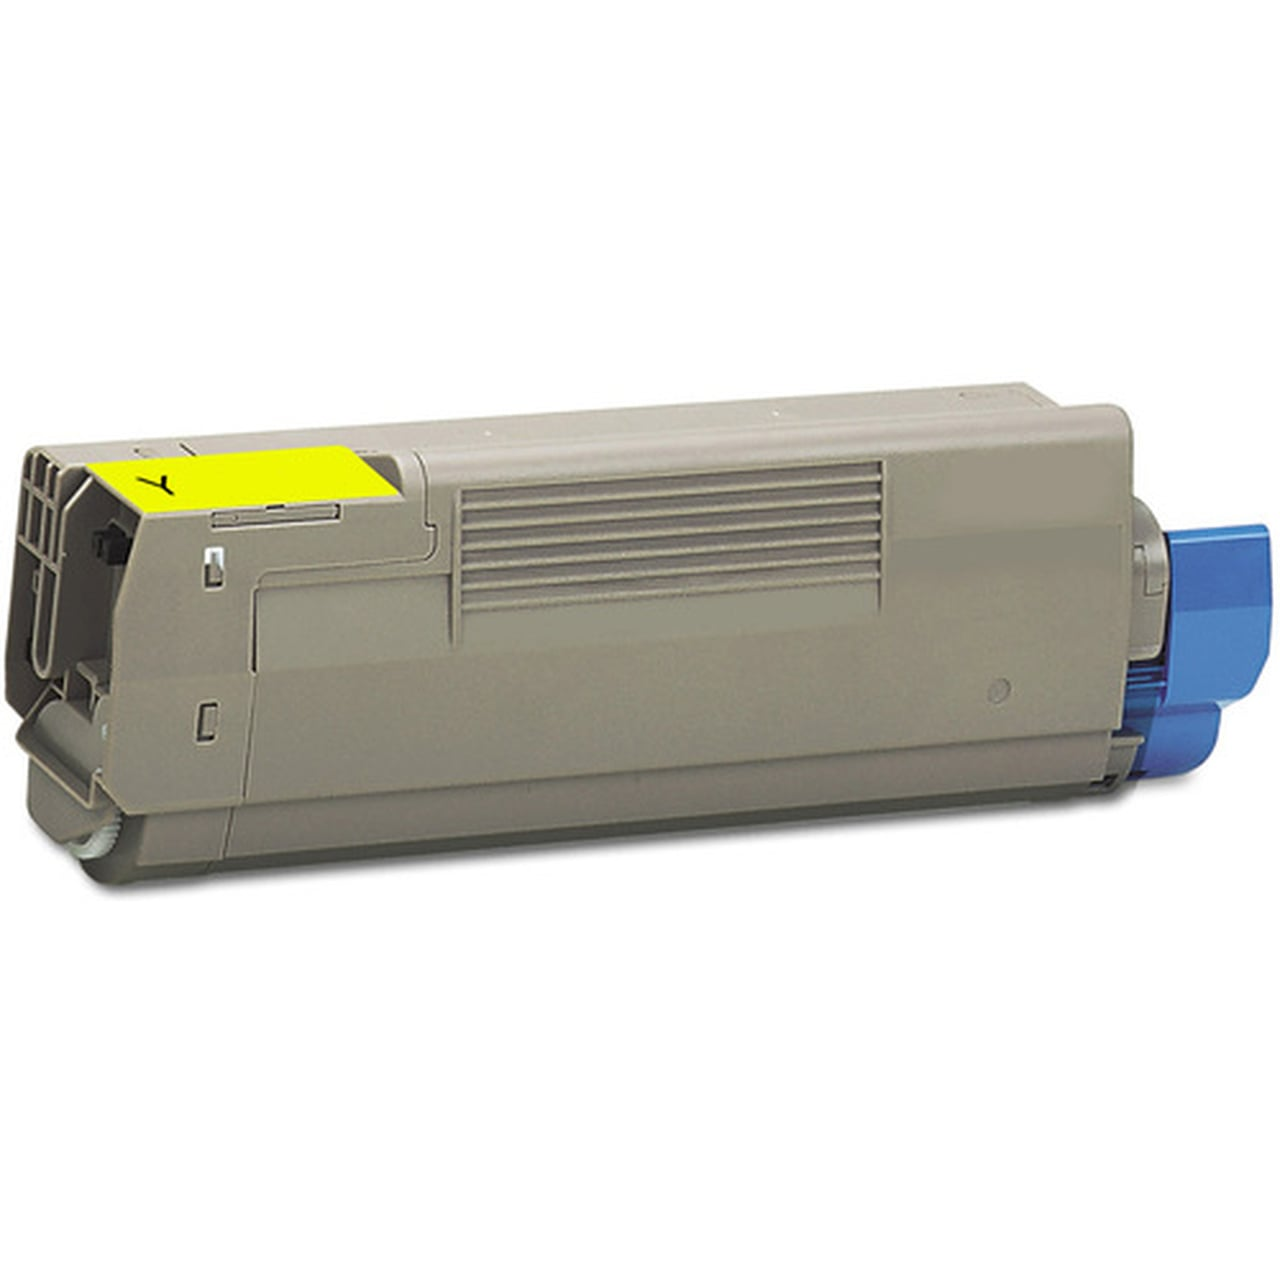 46507601 Toner Cartridge - Okidata Compatible (Yellow)